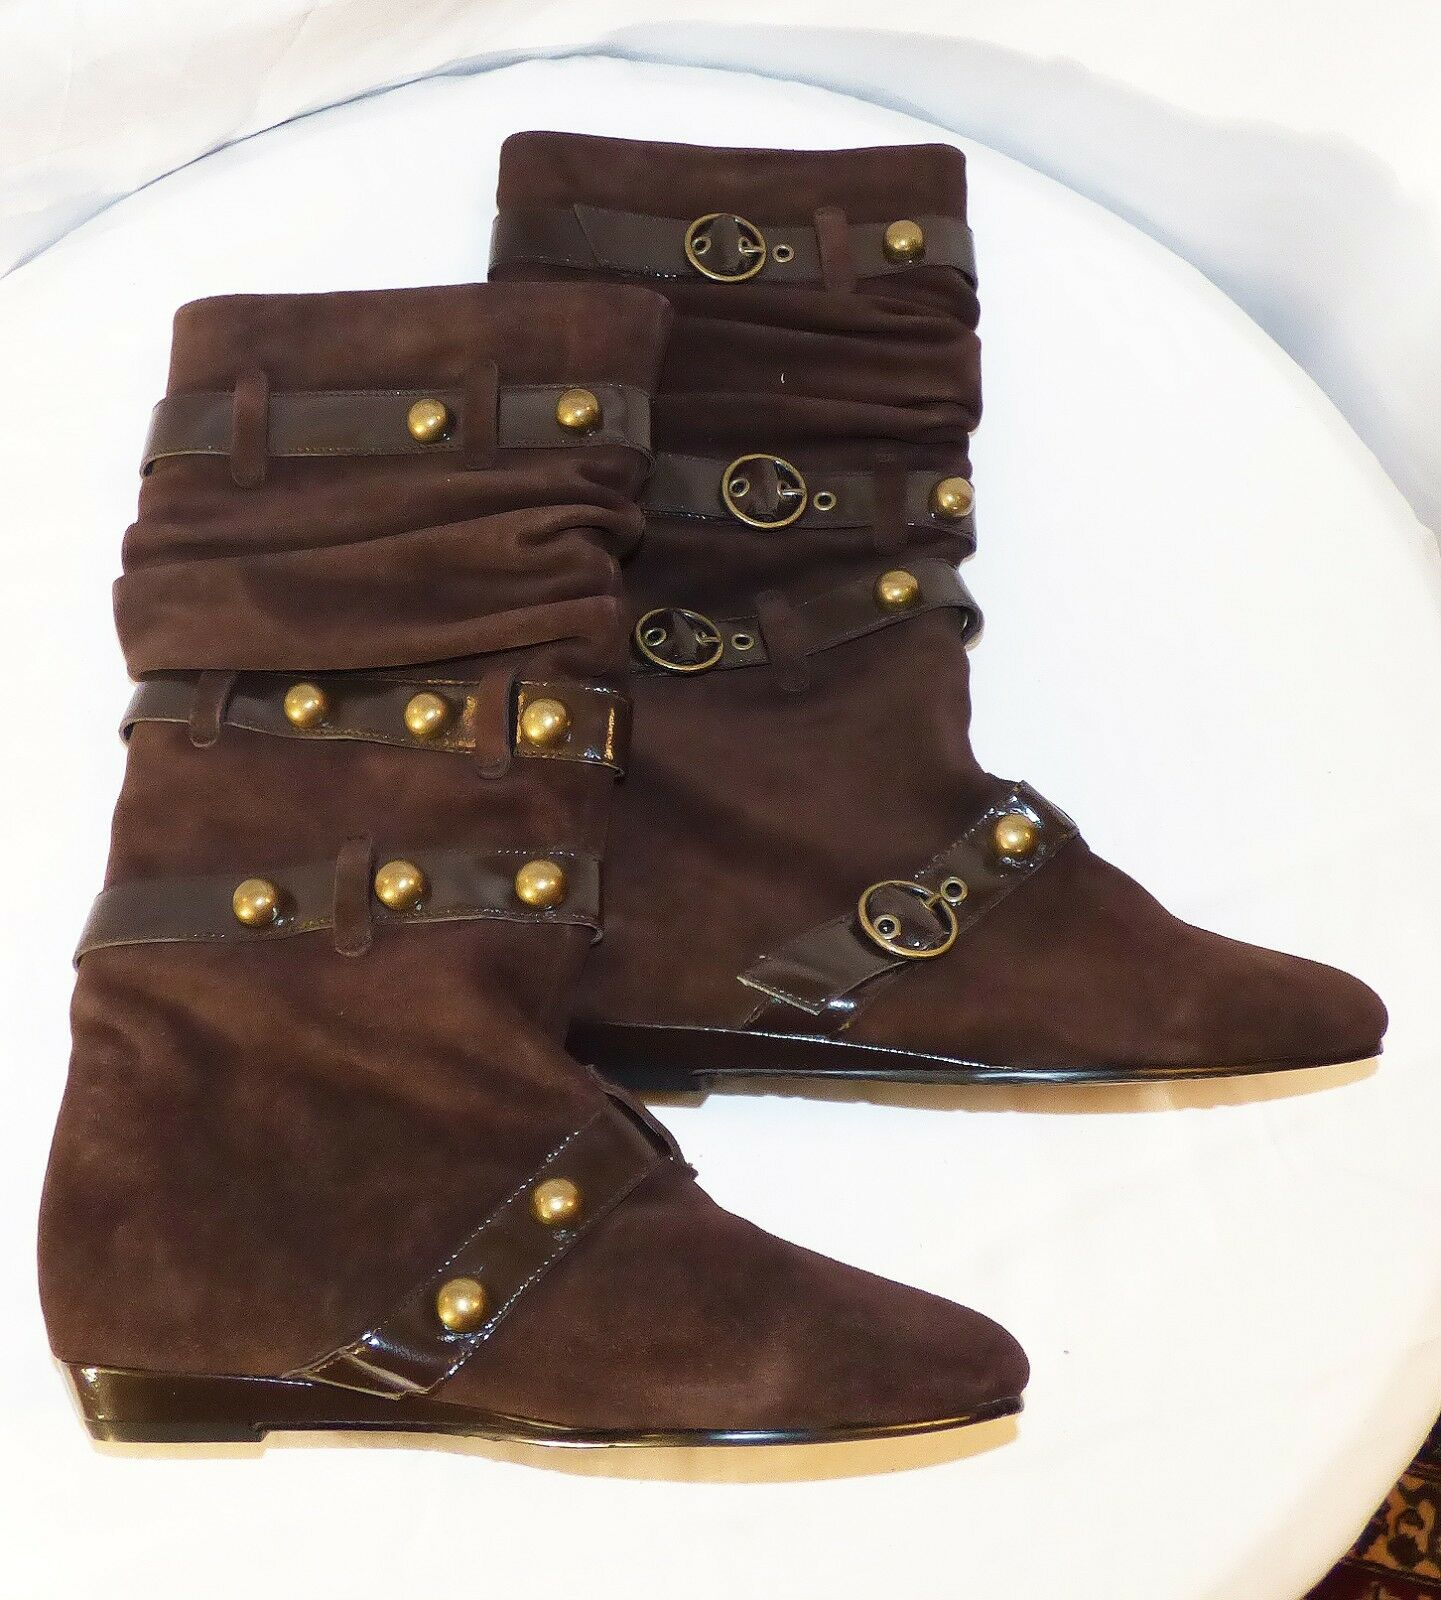 Authentic Betsey Johnson Leather Stiefel Knee High Sz 7.5 Very good NEW Condition